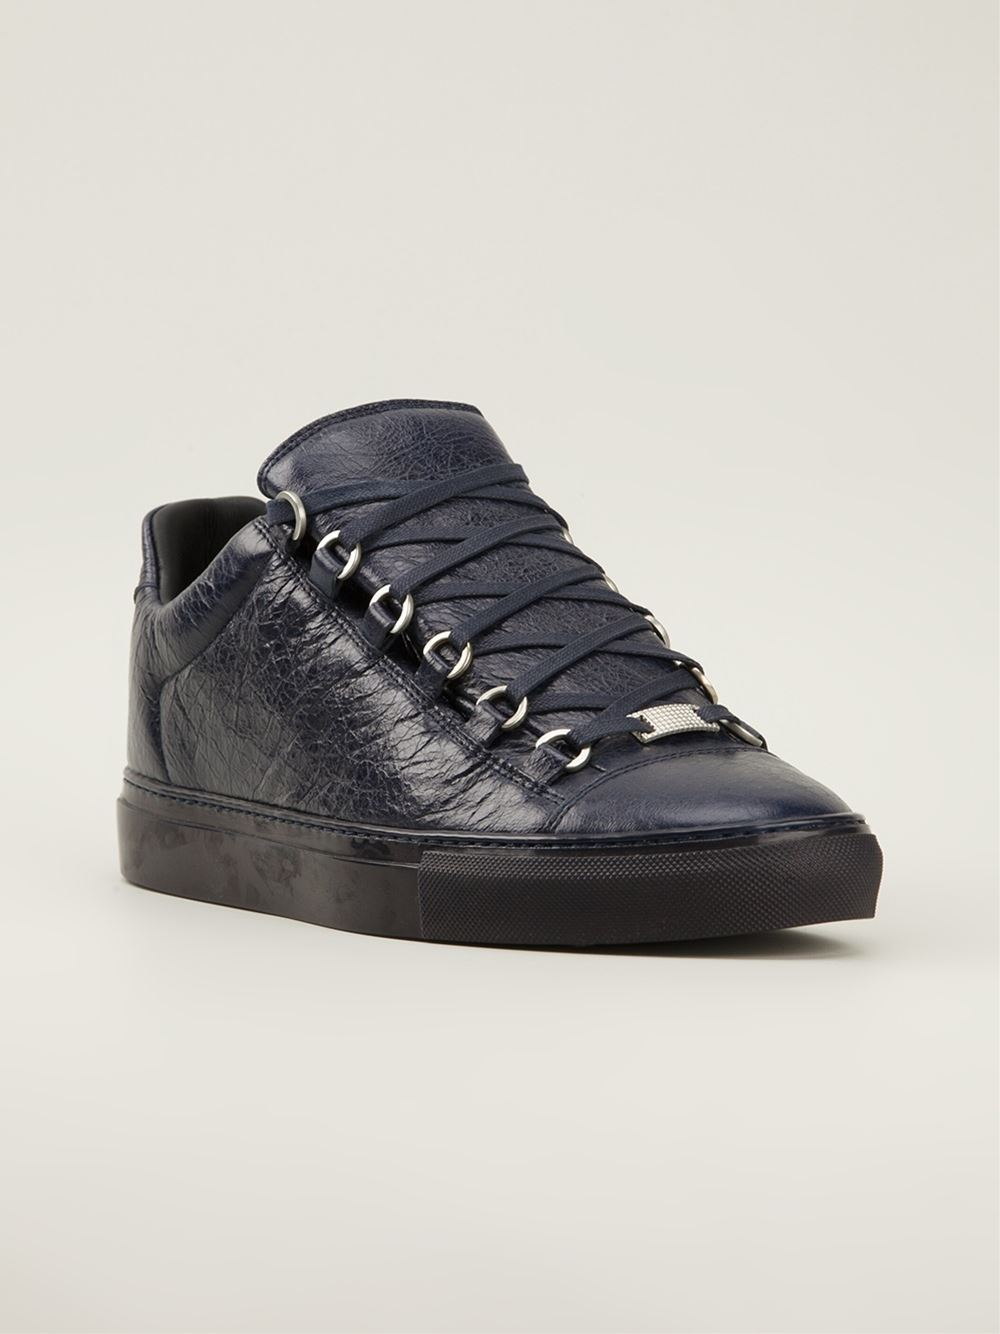 Balenciaga Mens Shoes Sale